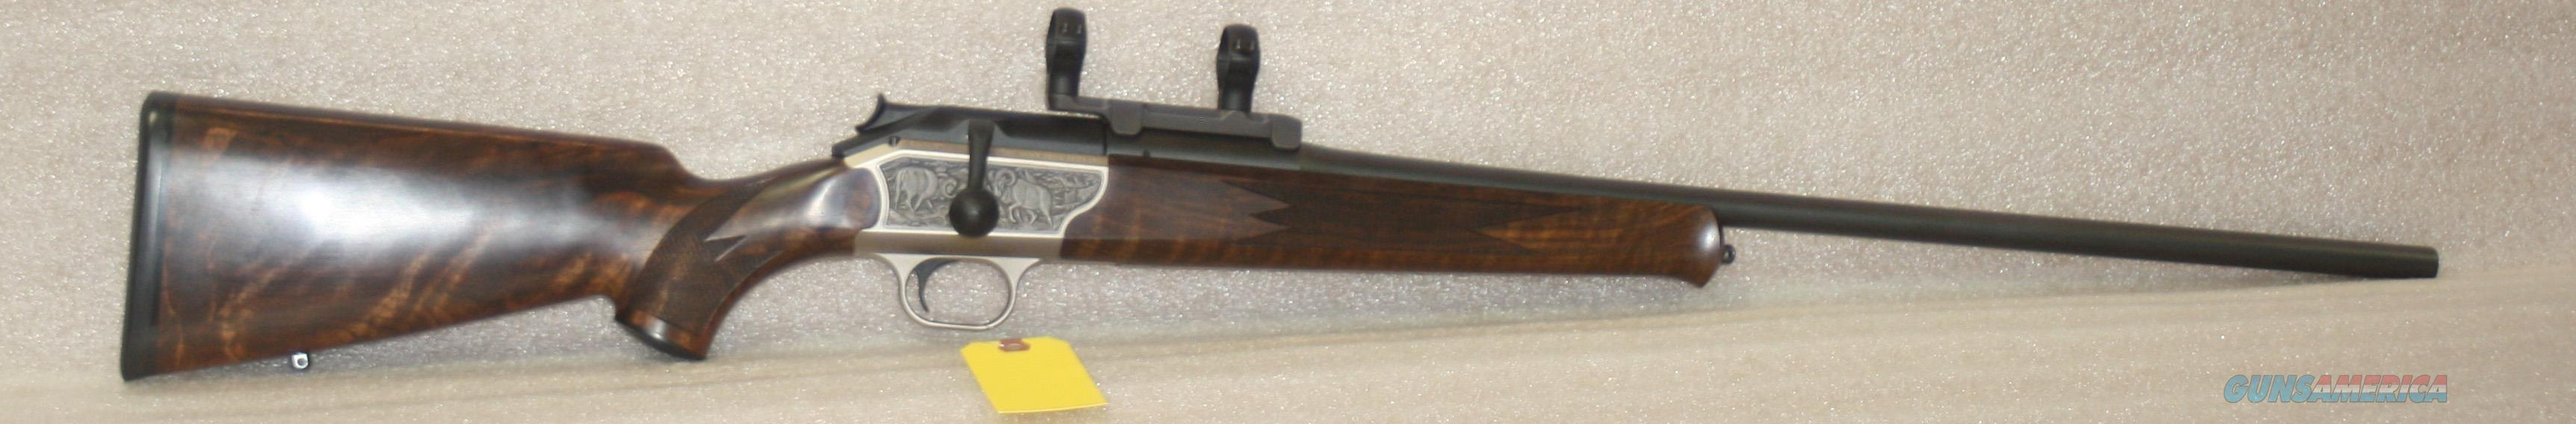 "BLASER R93 ATTACHE 25"" 7MM REM MAG WITH UPGRADED STOCK AND FOREARM JUST LIKE NEW  Guns > Rifles > Blaser Rifles/Combos/Drillings"